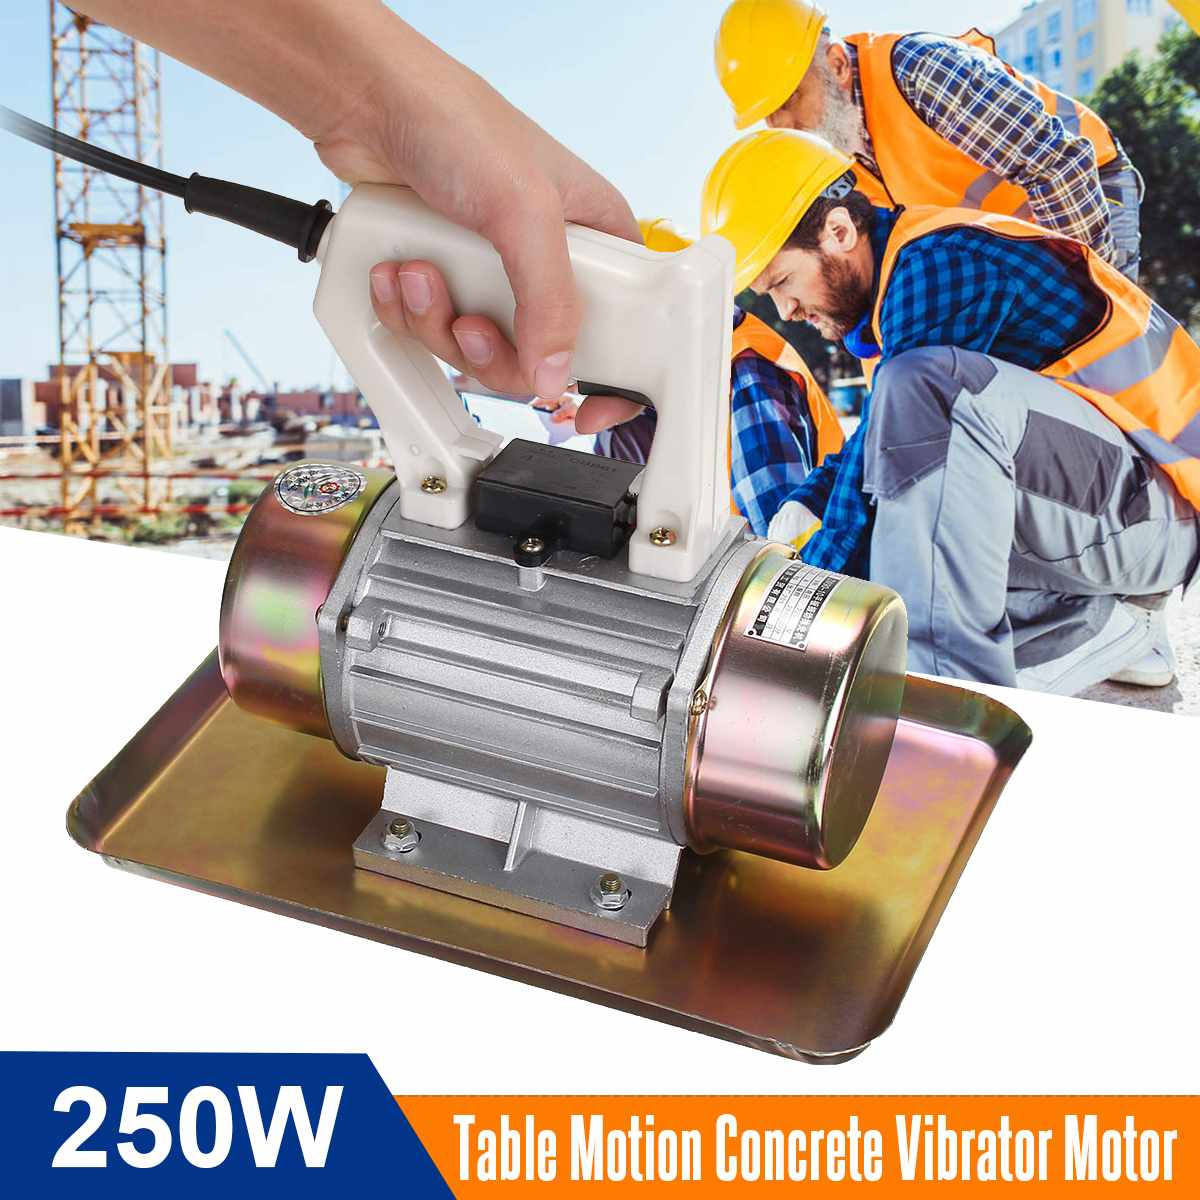 220V 250W 2840RPM Table Motion Concrete Vibrator Motor Portable Construction Tool Hand-held Concrete Vibrator Motor